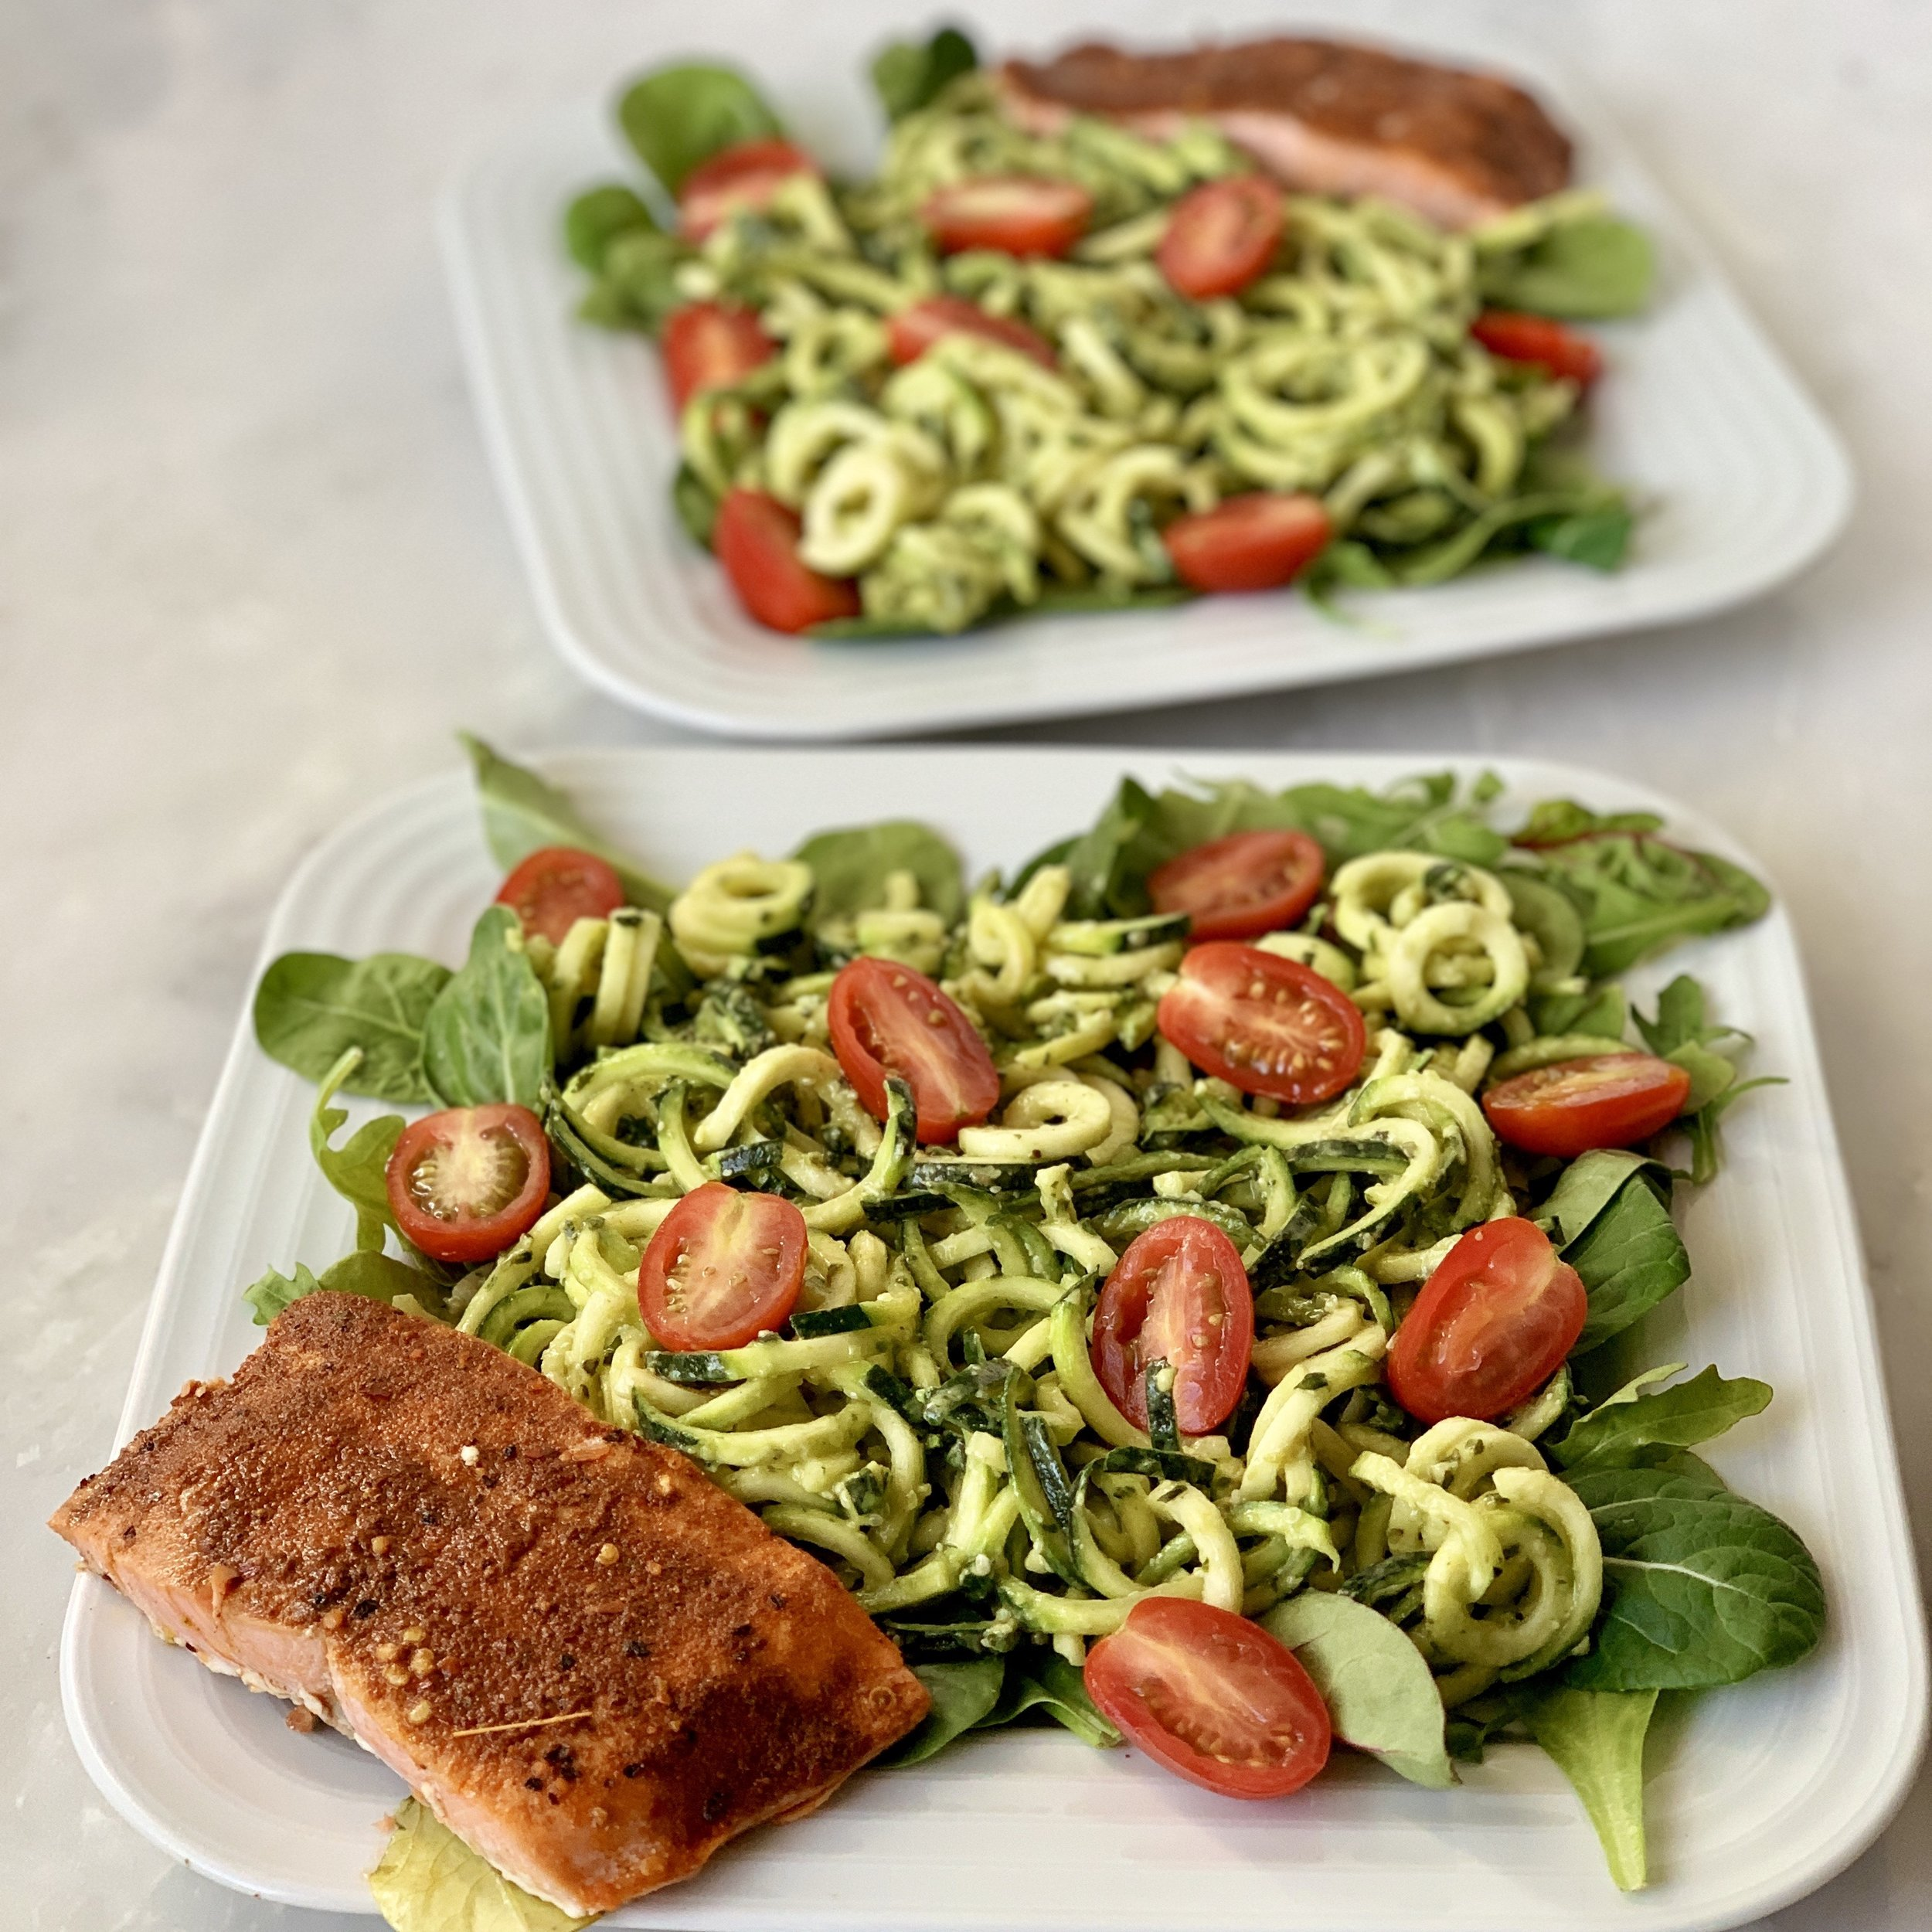 One of my favorite meals during pregnancy was salmon with zoodles and my avocado pesto (SO creamy and decadent!) Recipe for the pesto is on my website. This salmon is Sizzlefish of course! See link and discount below.